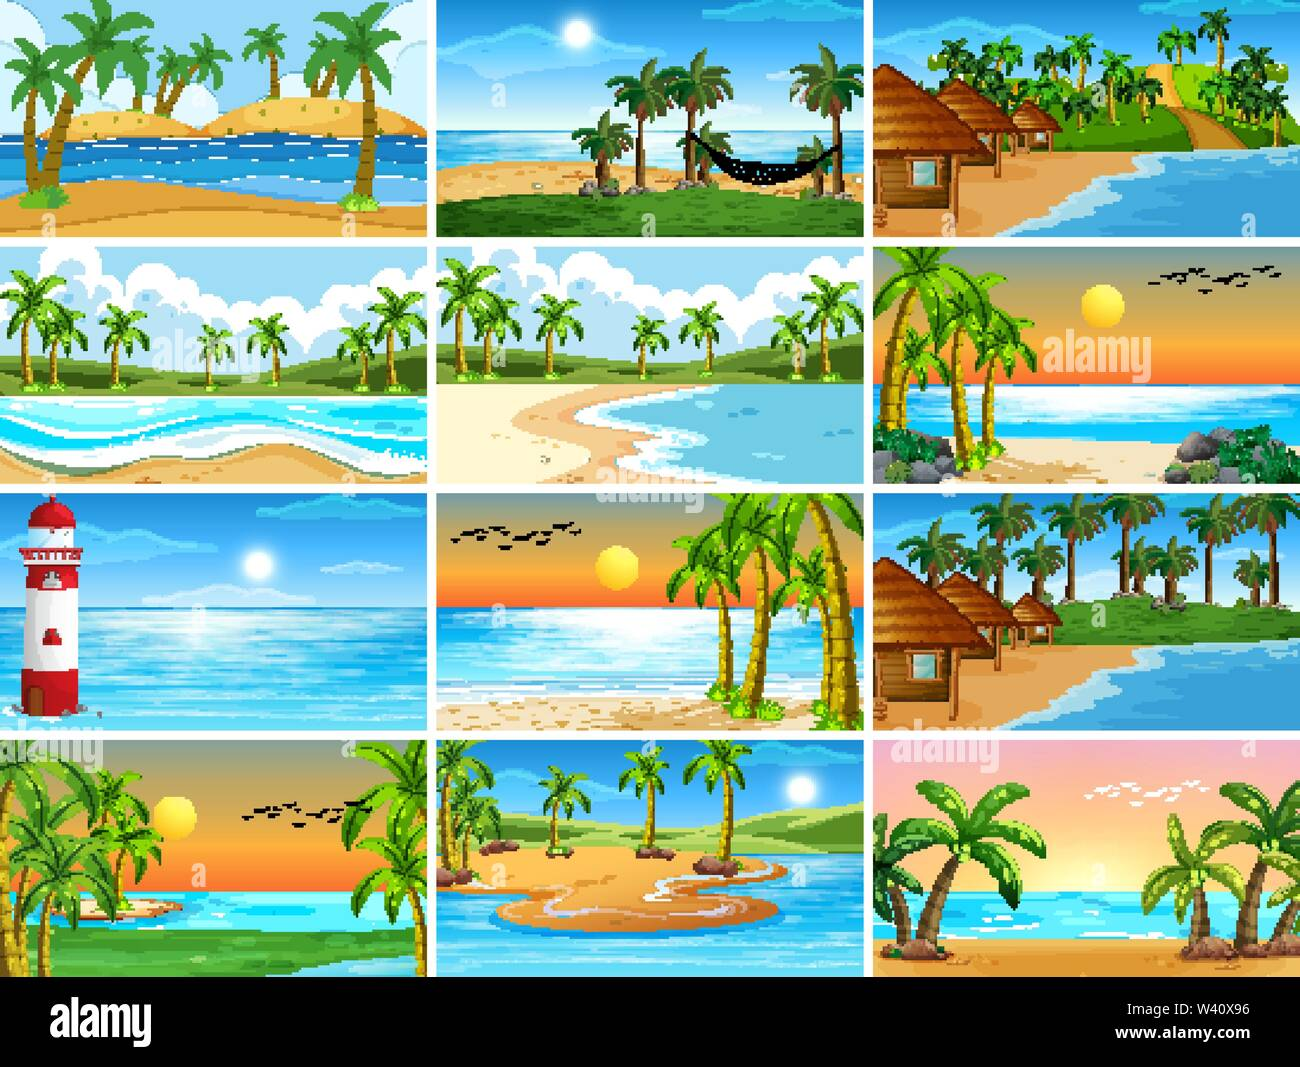 Set of beach scenes illustration - Stock Image